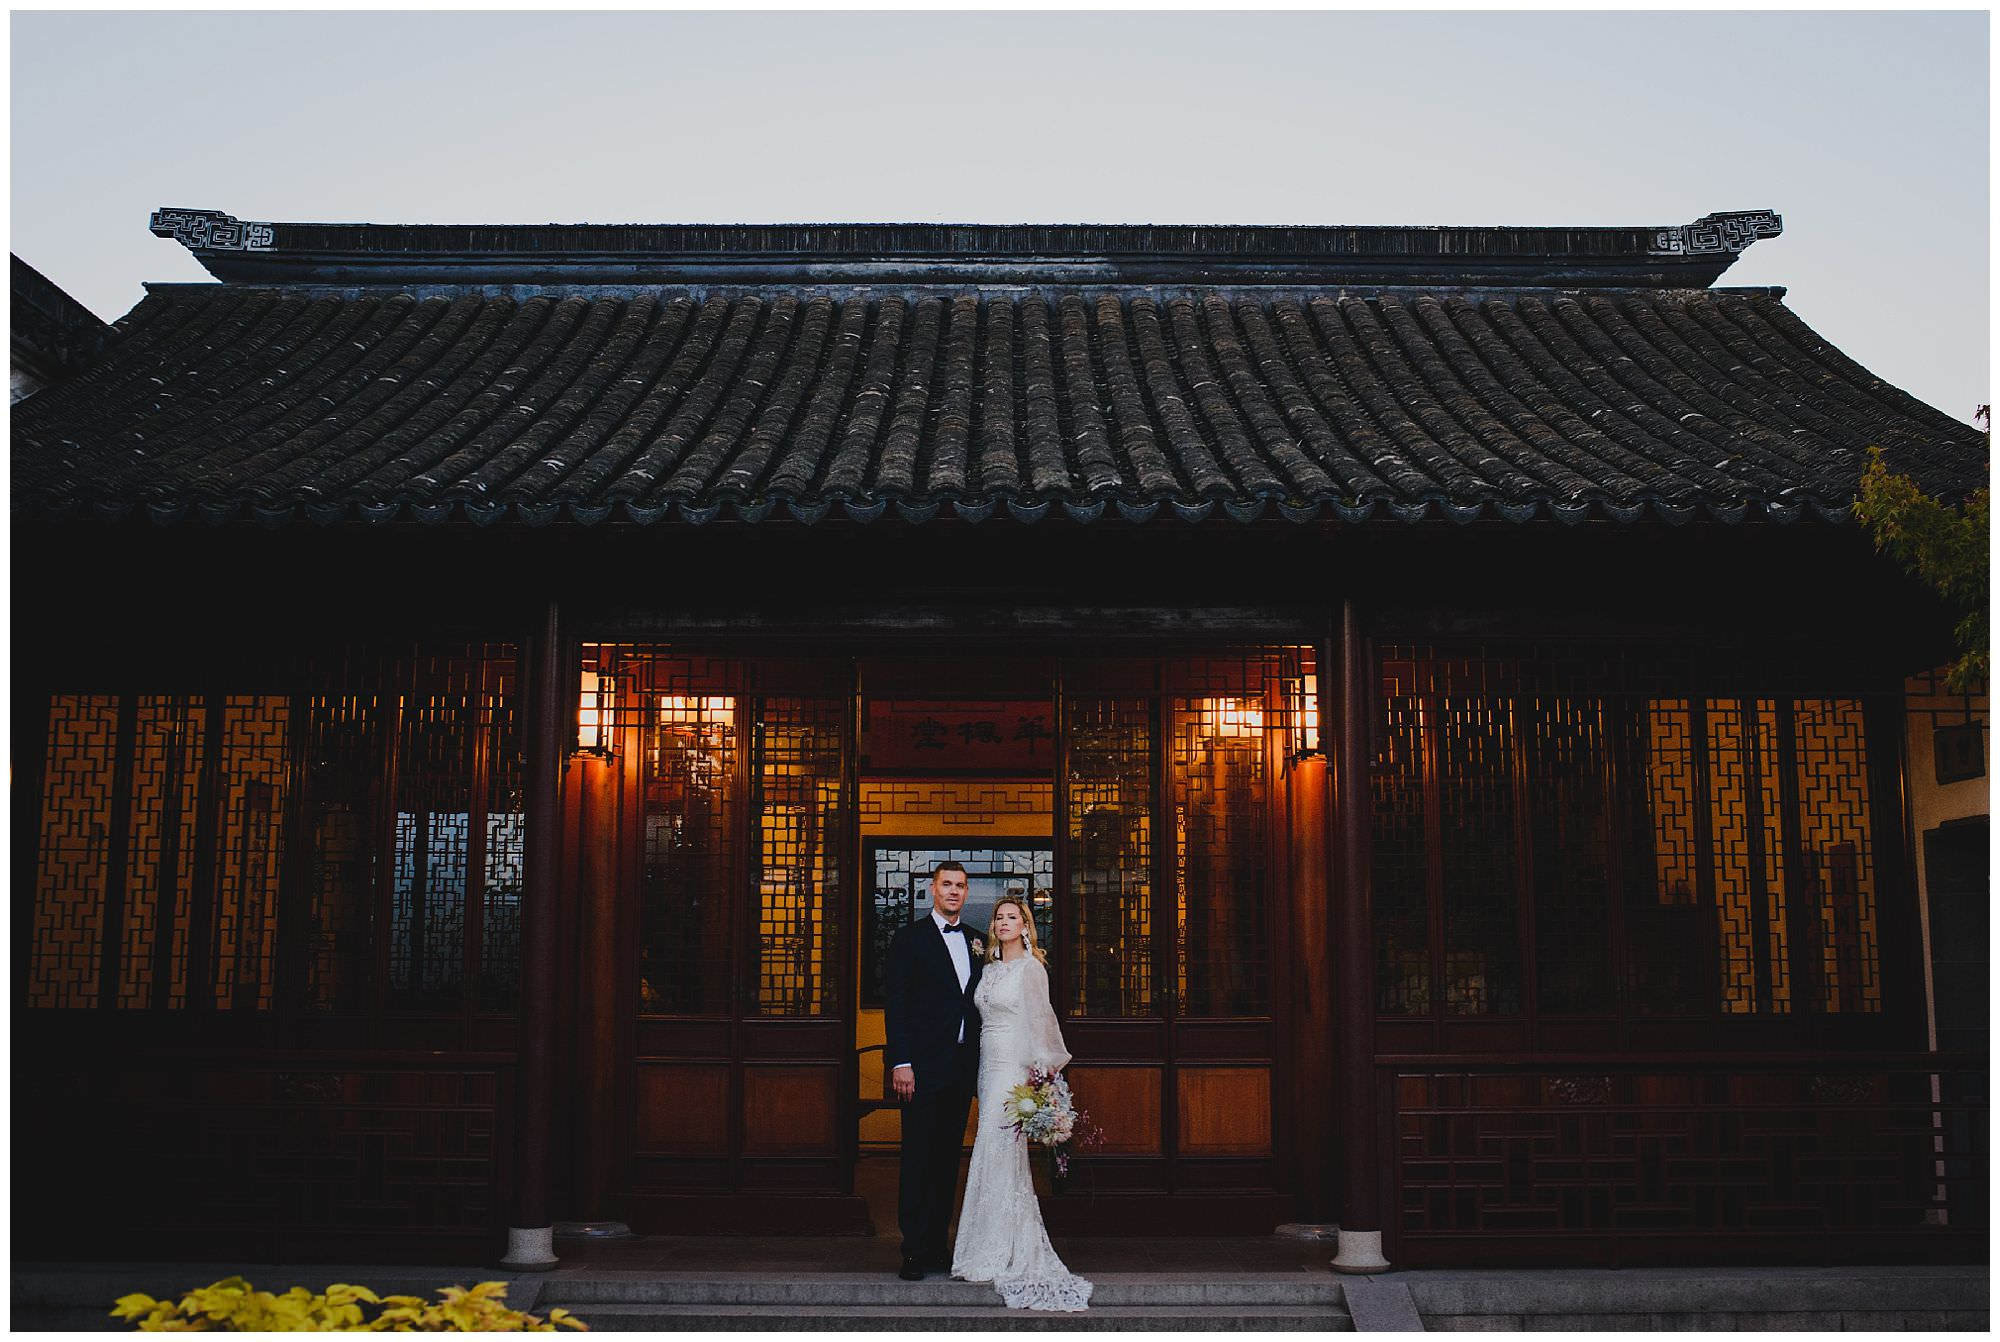 Stylish sunset wedding in Vancouver at Dr. Sun Yat Sen Classical Chinese Gardens